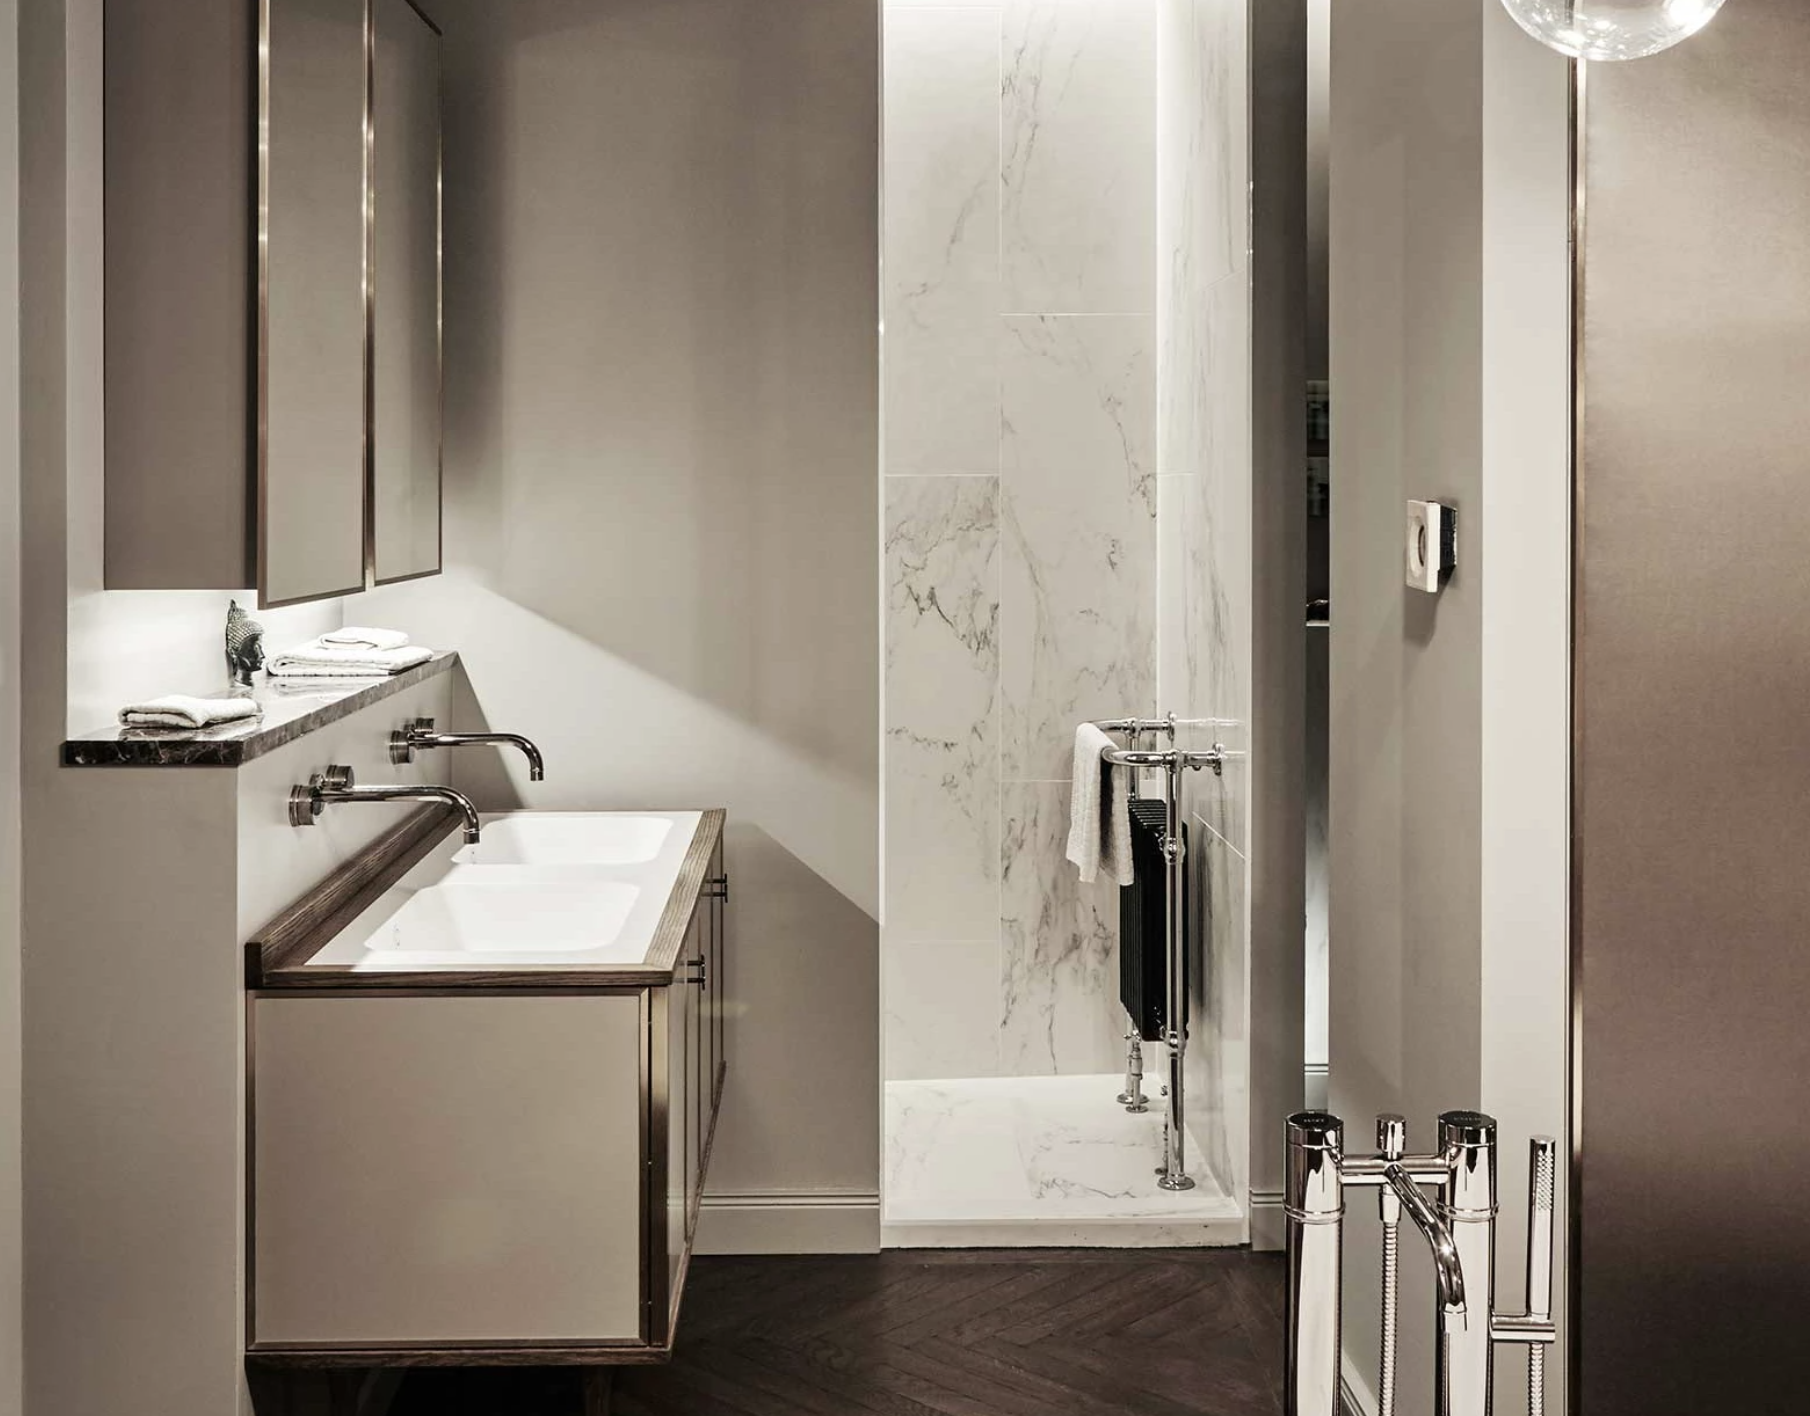 NOVONO, Mystic And Contemporary Bathrooms From Berlin Captura de ecra   2020 11 18 a  s 16